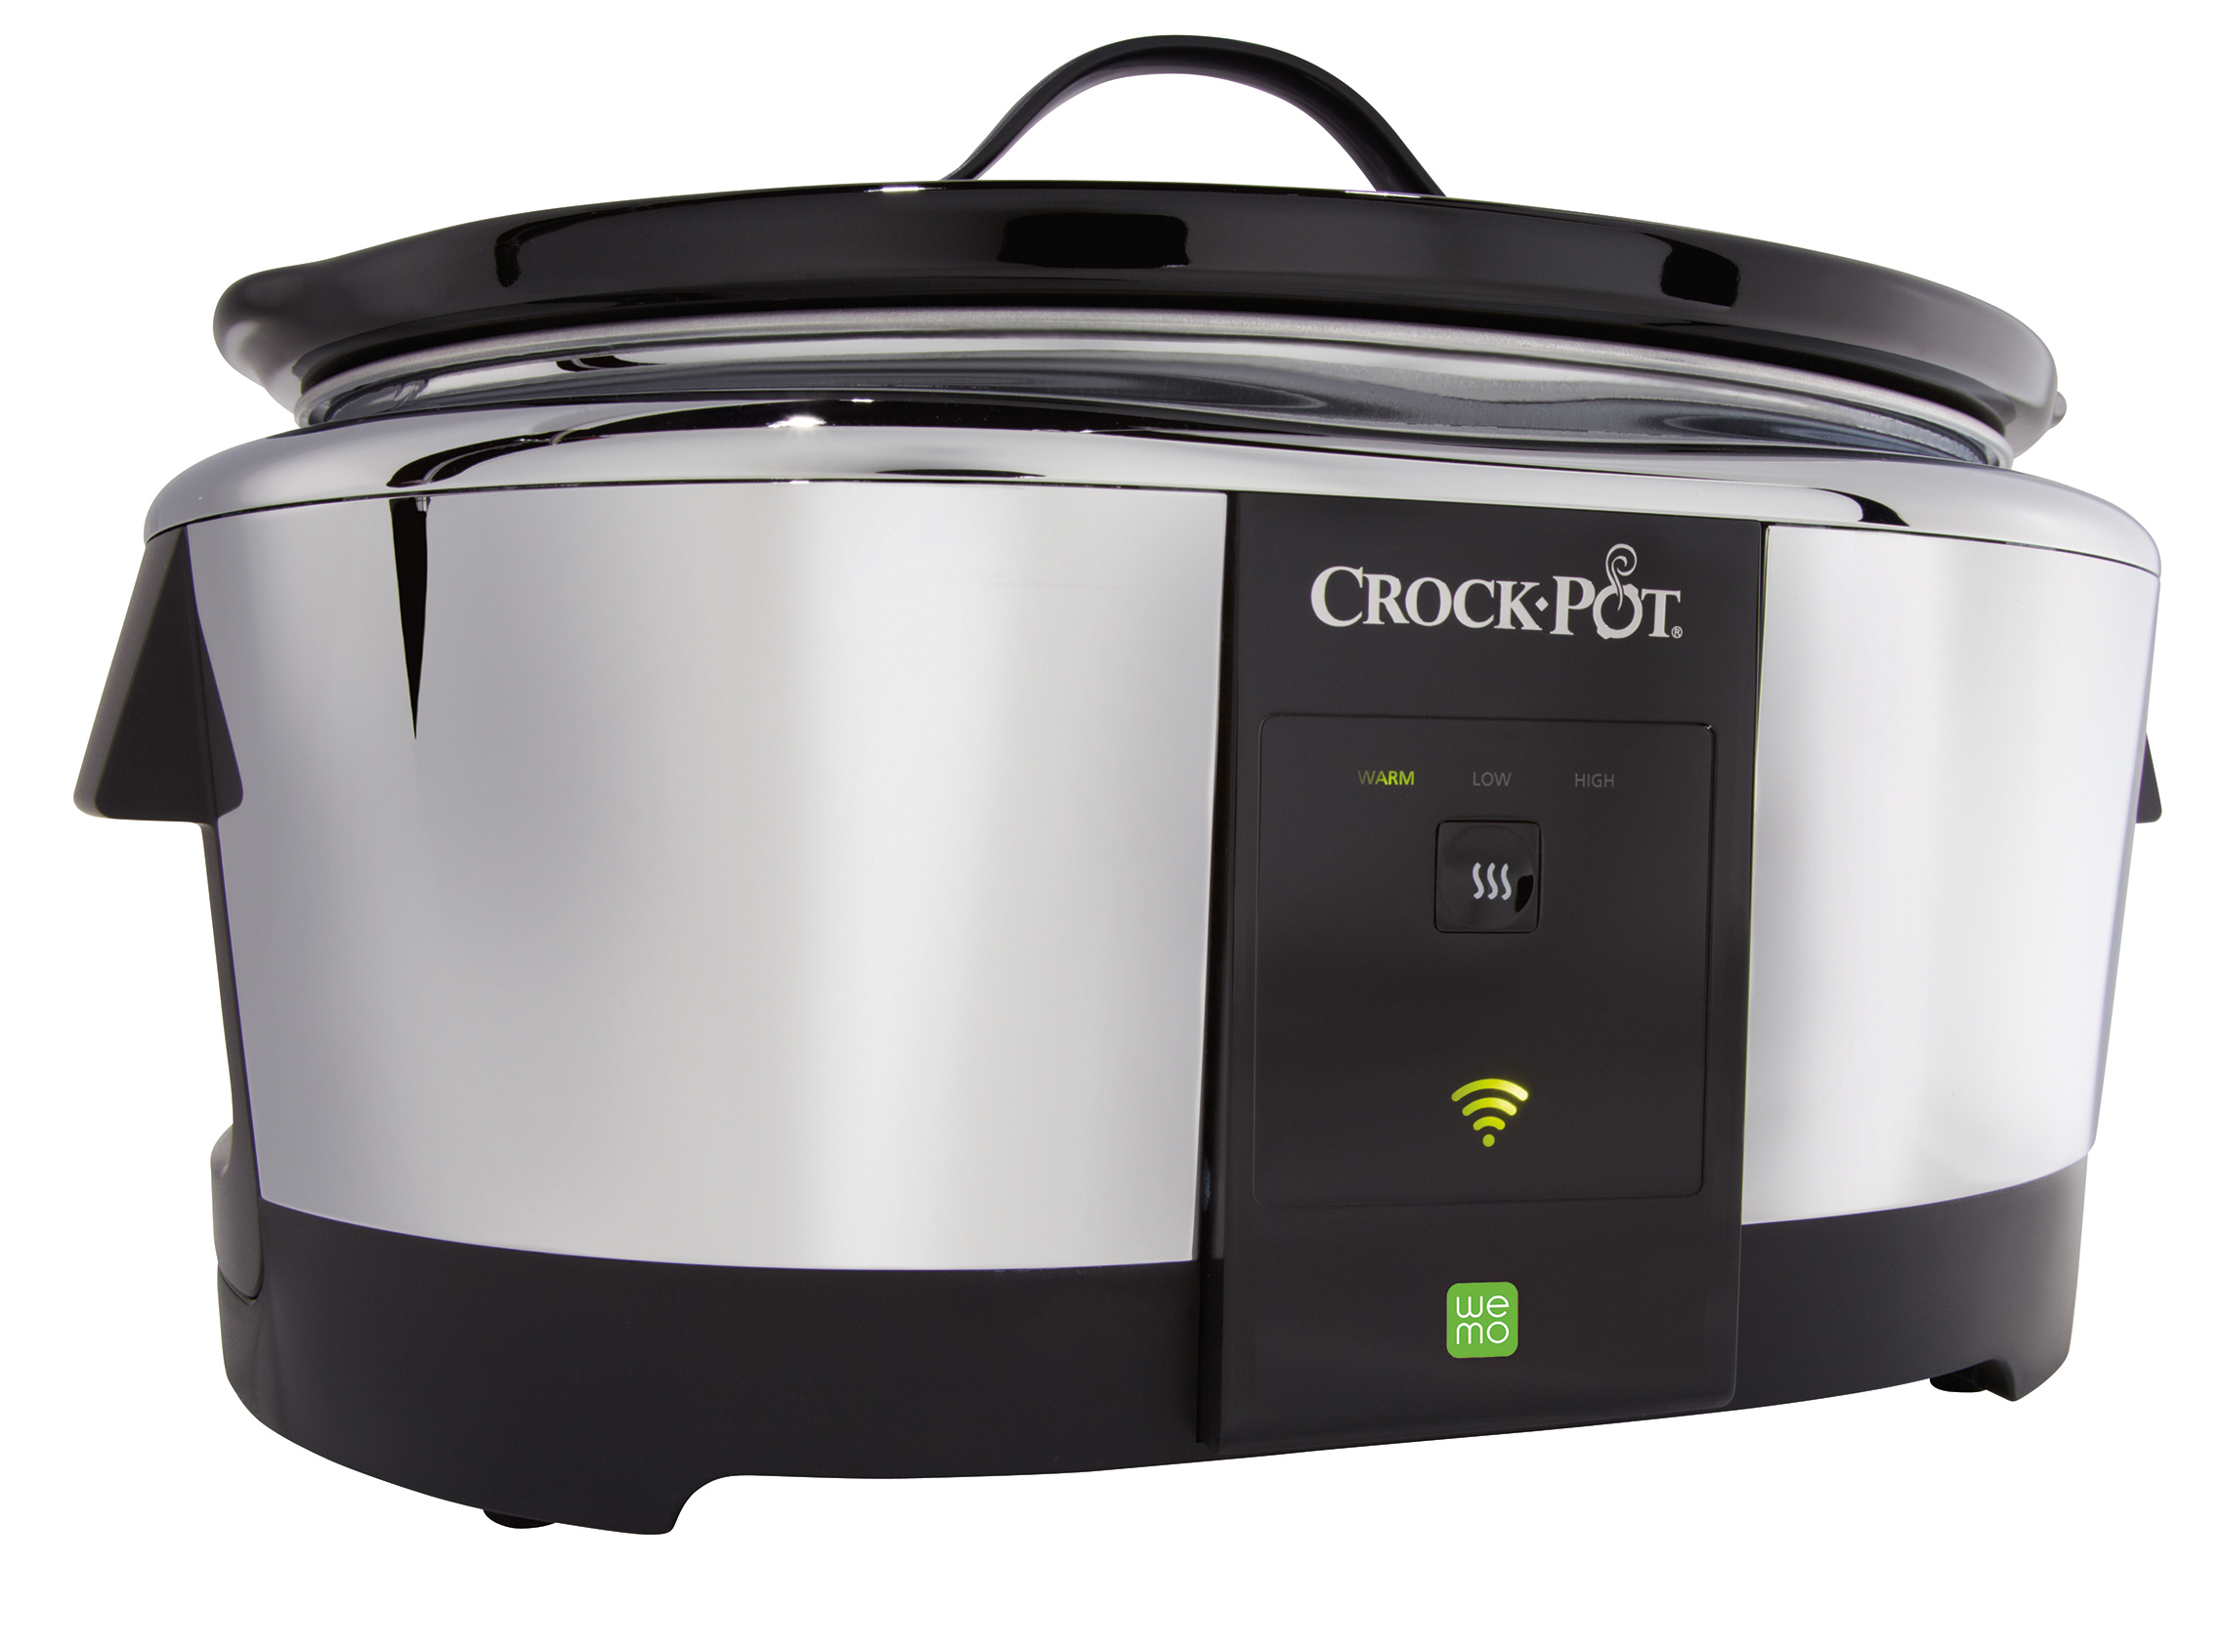 Crock-Pot Smart Slow Cooker with WeMo (Photo: Business Wire)